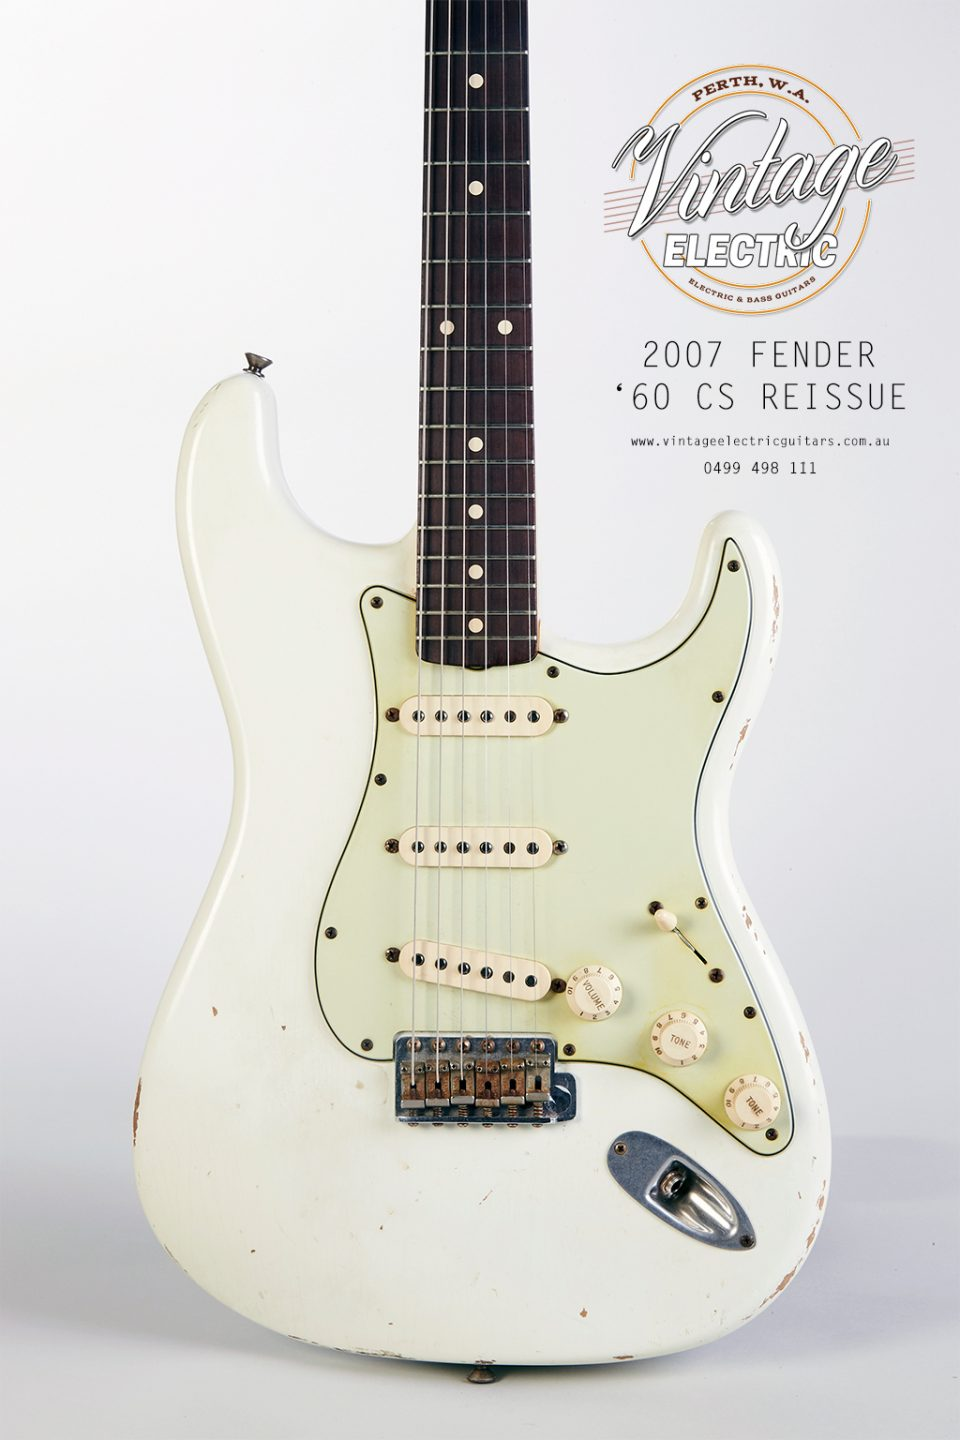 2007 Fender Stratocaster Custom Shop Body